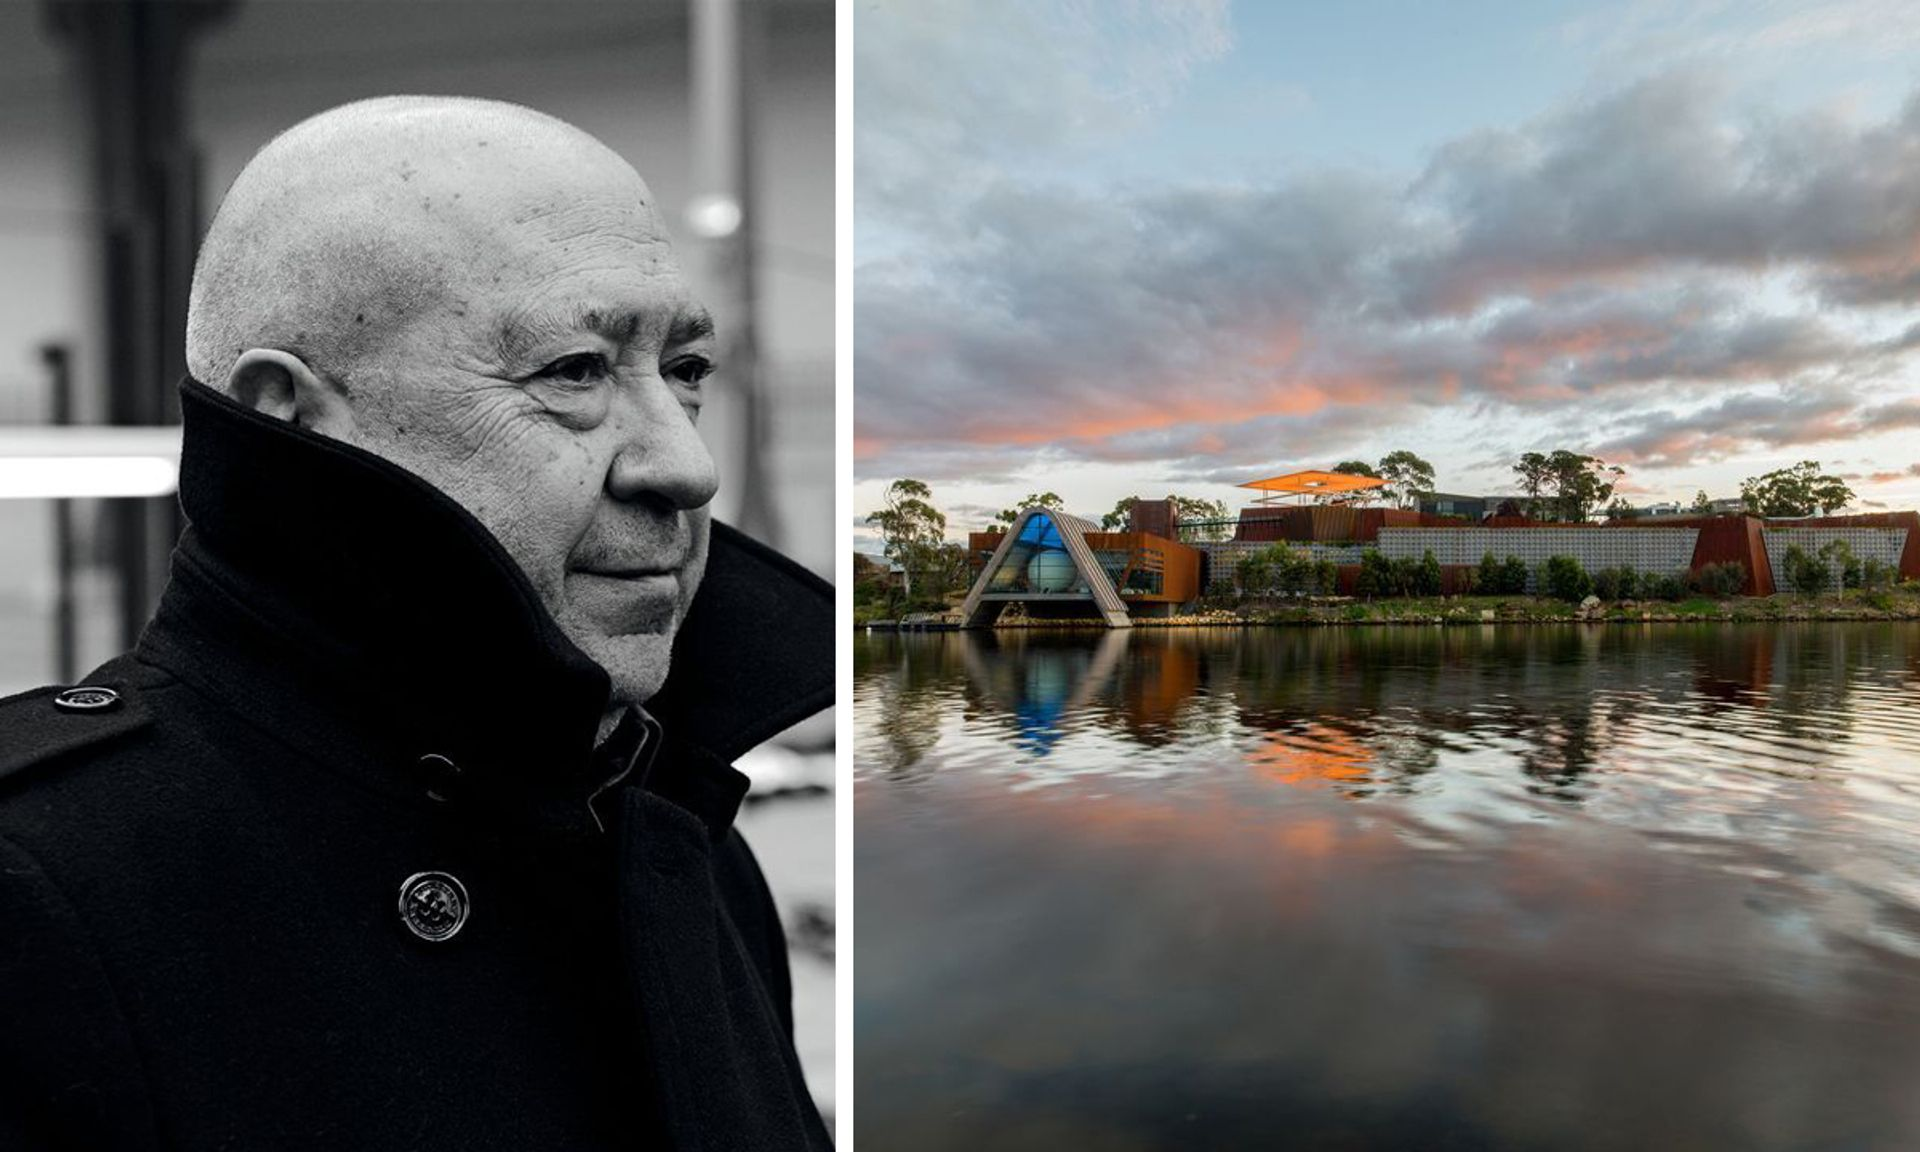 Christian Boltanski created the work for the Museum of Old and New Art in Hobart, Tasmania Boltanski: © Didier Plowy, courtesy of Marian Goodman Gallery; Mona: © Mona/Jesse Hunniford; courtesy of MONA, Museum of Old and New Art